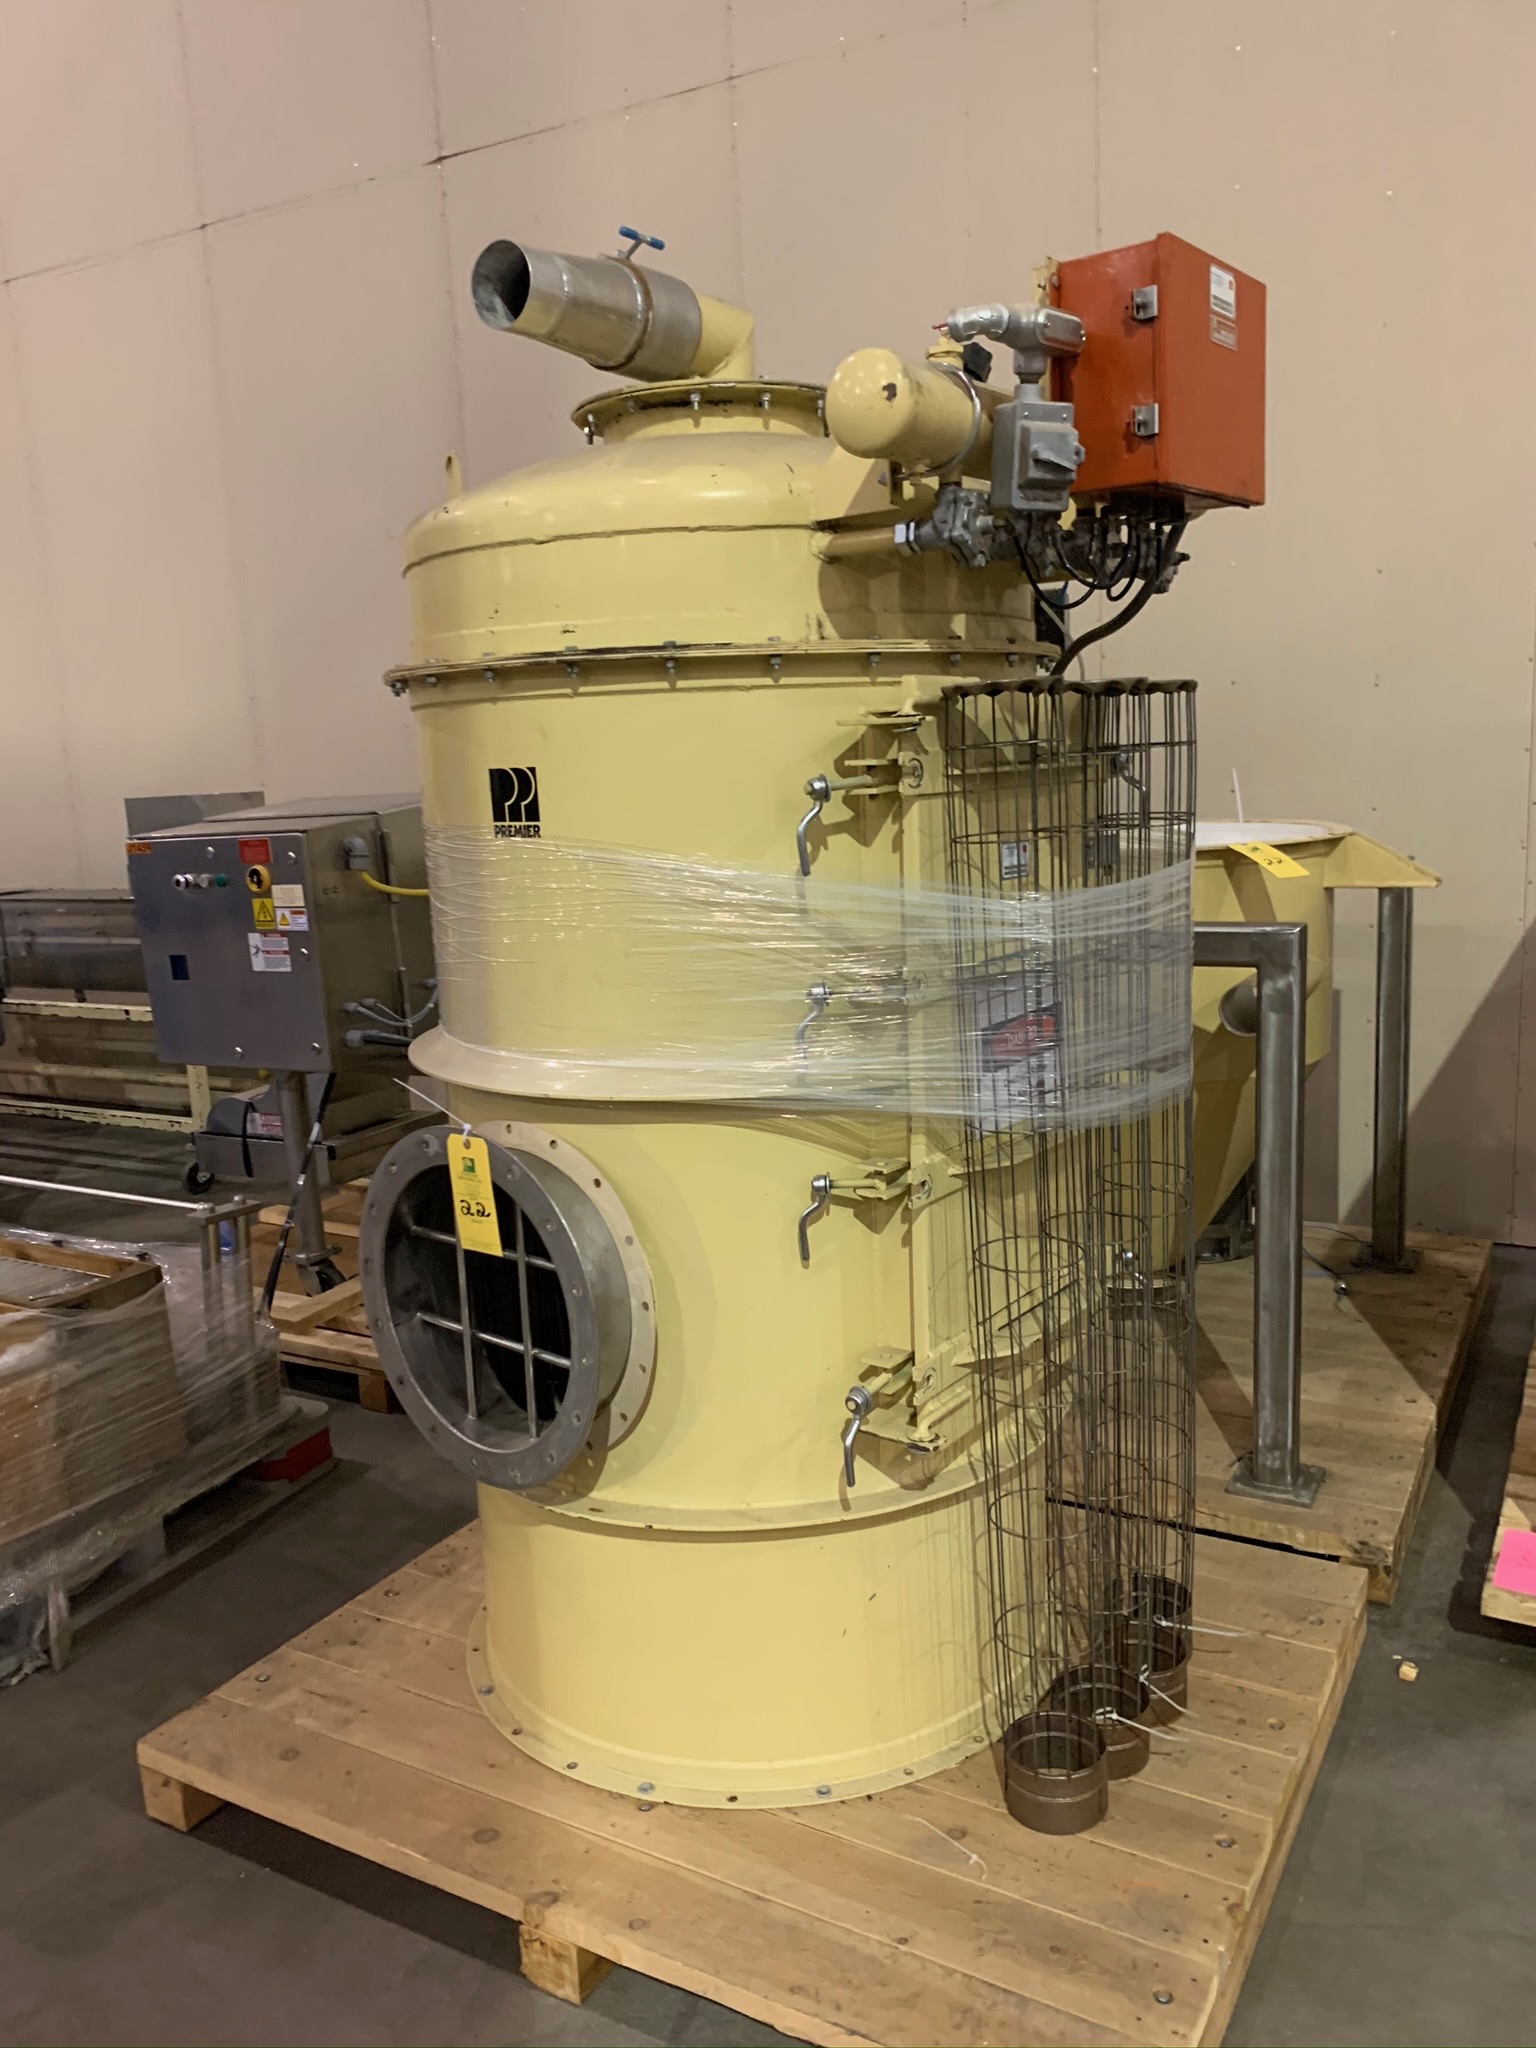 Premier Pneumatics Dust Collector Model FPC-P-E-14-58-102 S/N 5214-107 (Rigging Fee - $250) - Image 2 of 5